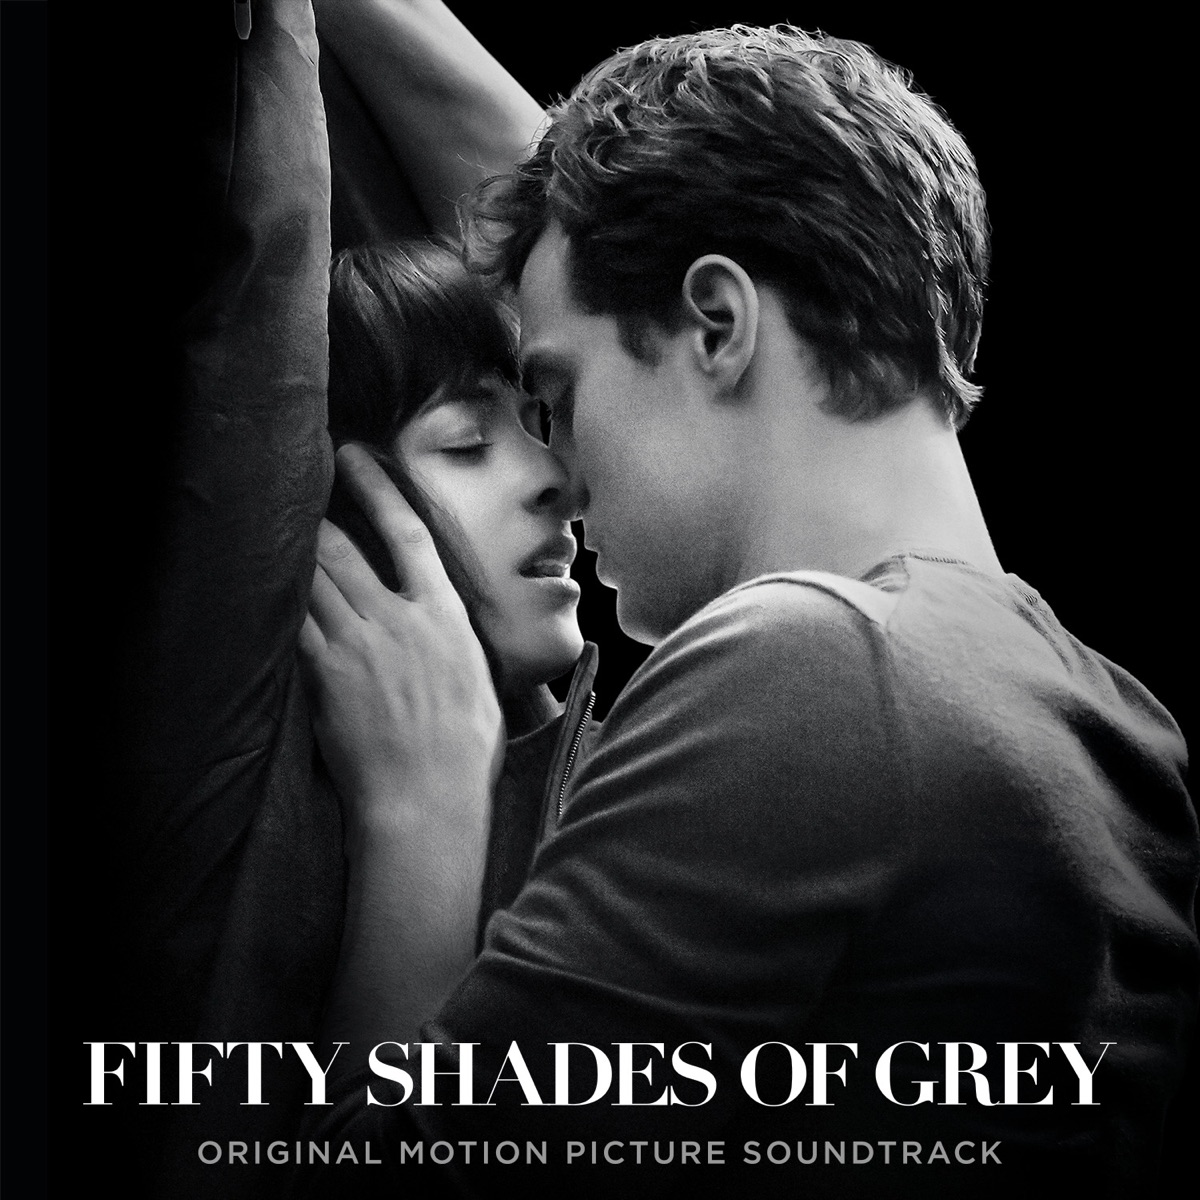 Fifty Shades of Grey Original Motion Picture Soundtrack Various Artists CD cover